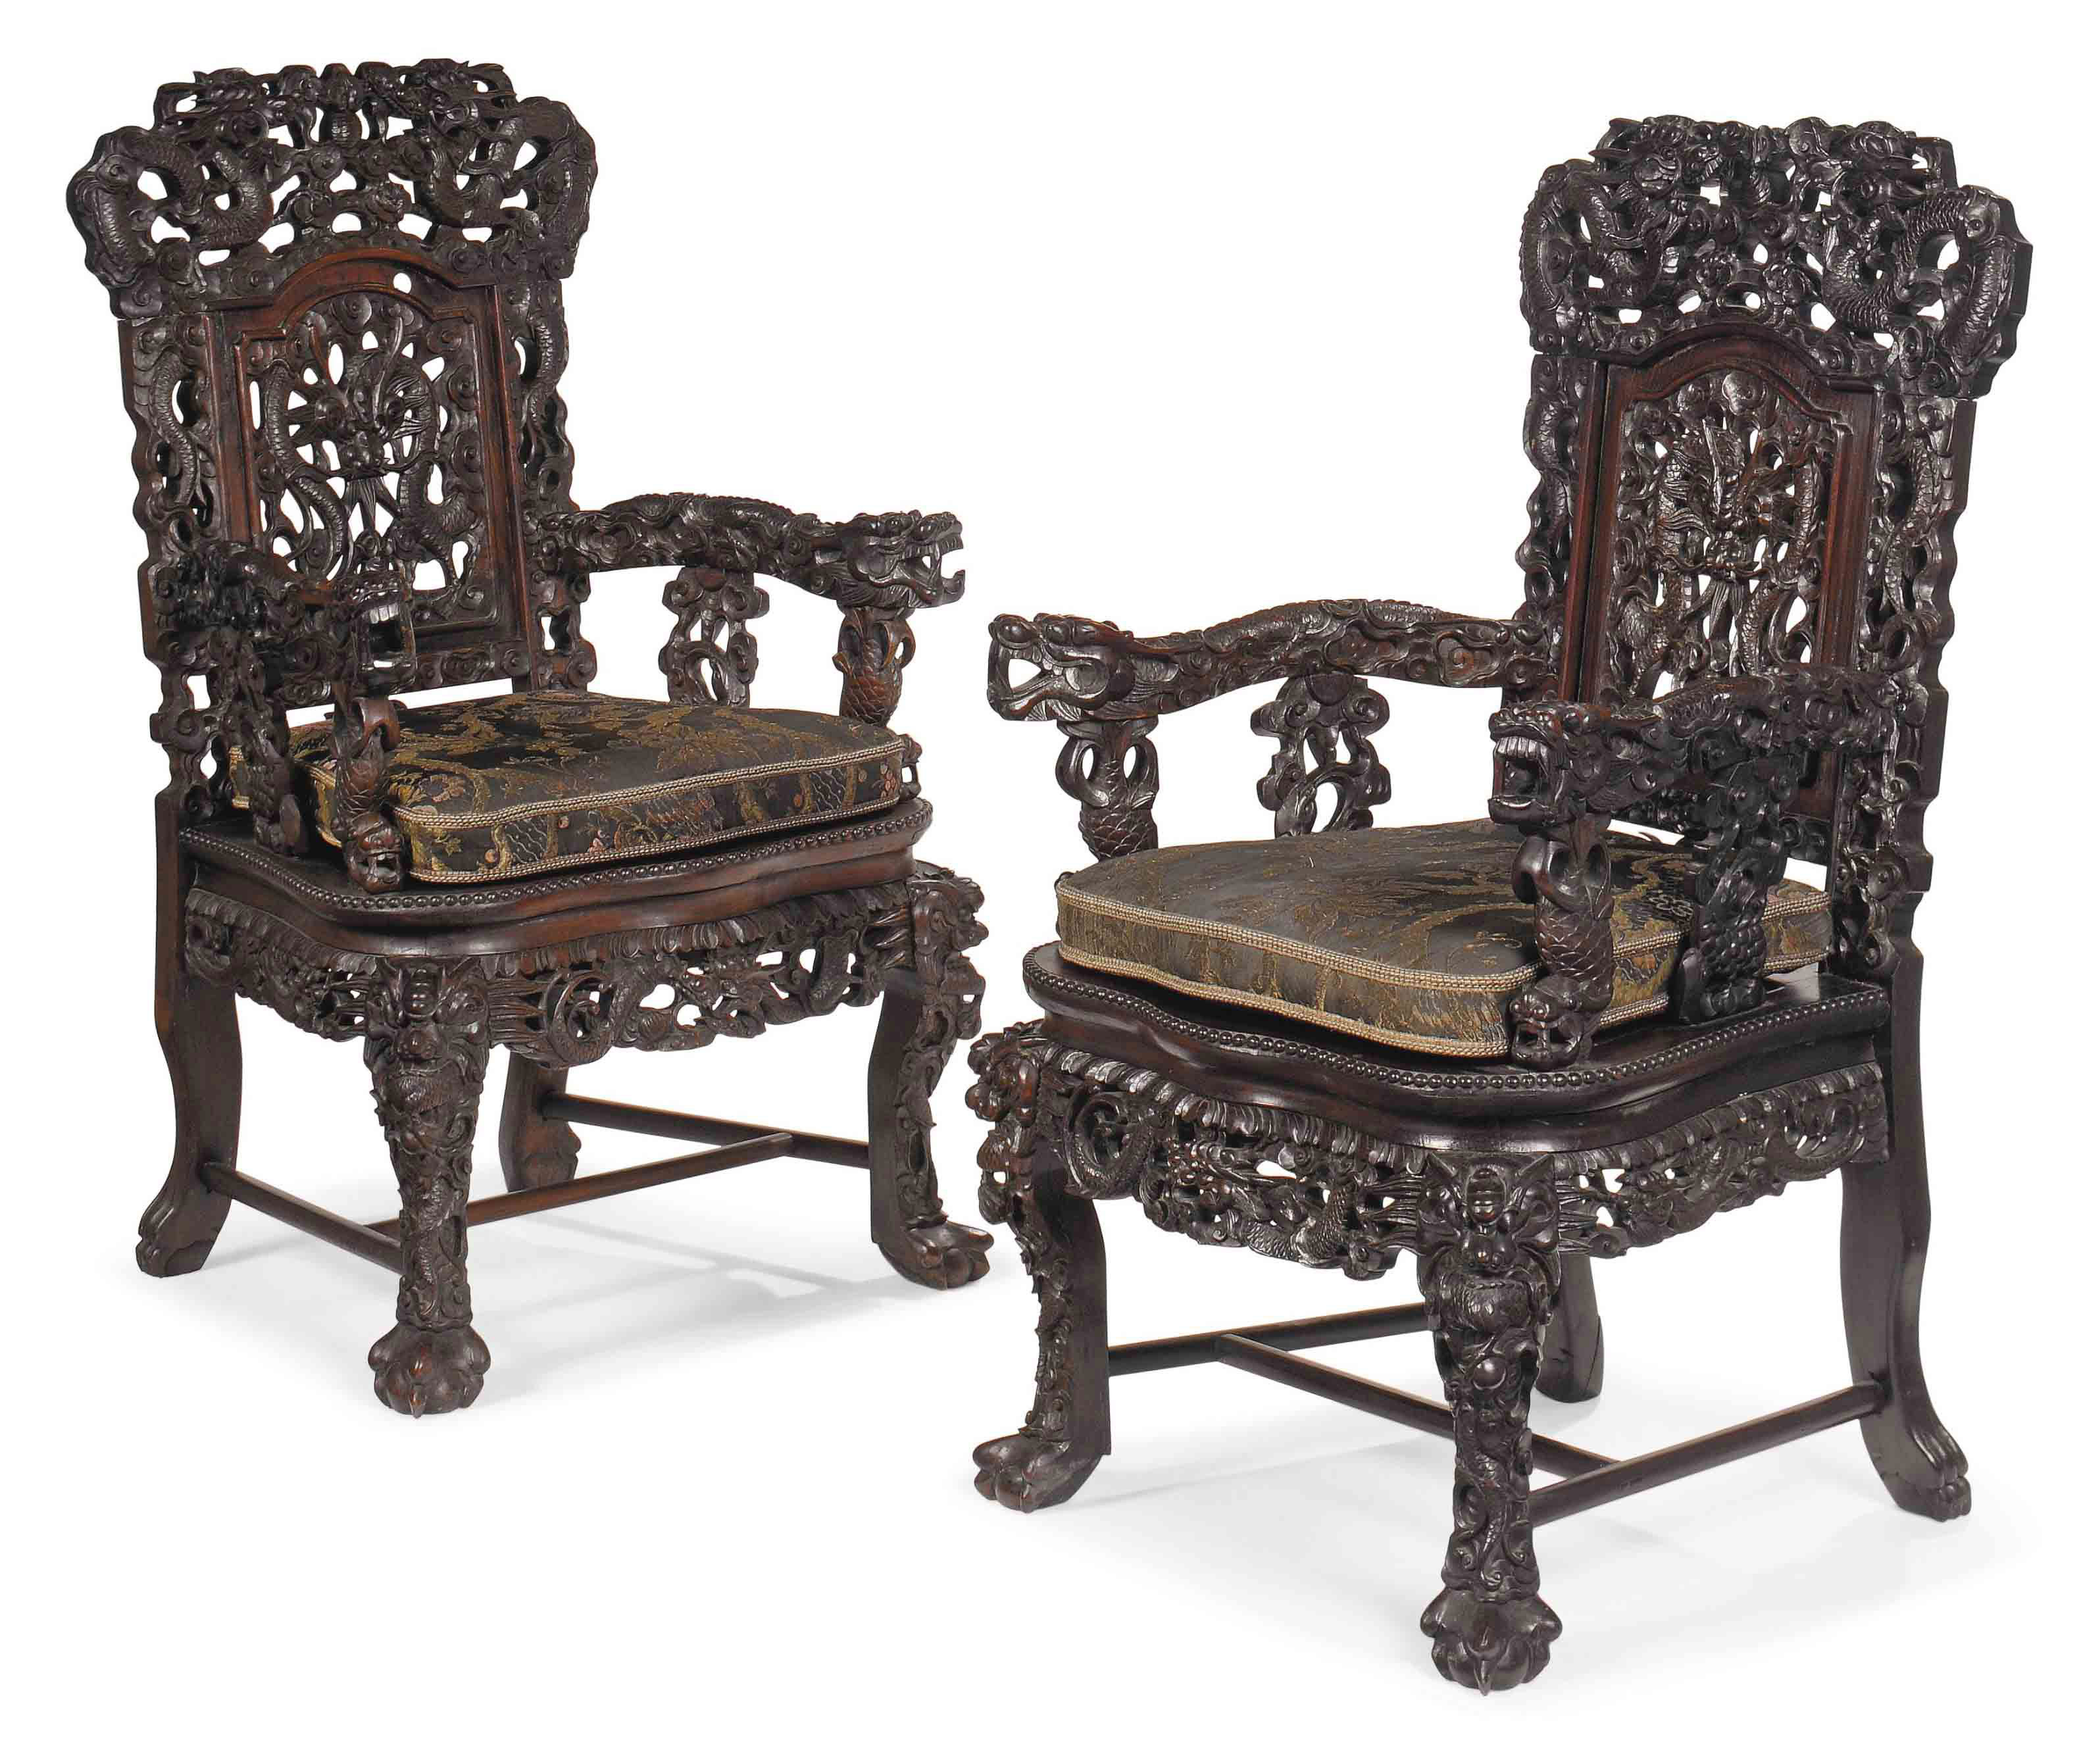 A PAIR OF SOUTH EAST ASIAN HARDWOOD ARMCHAIRS